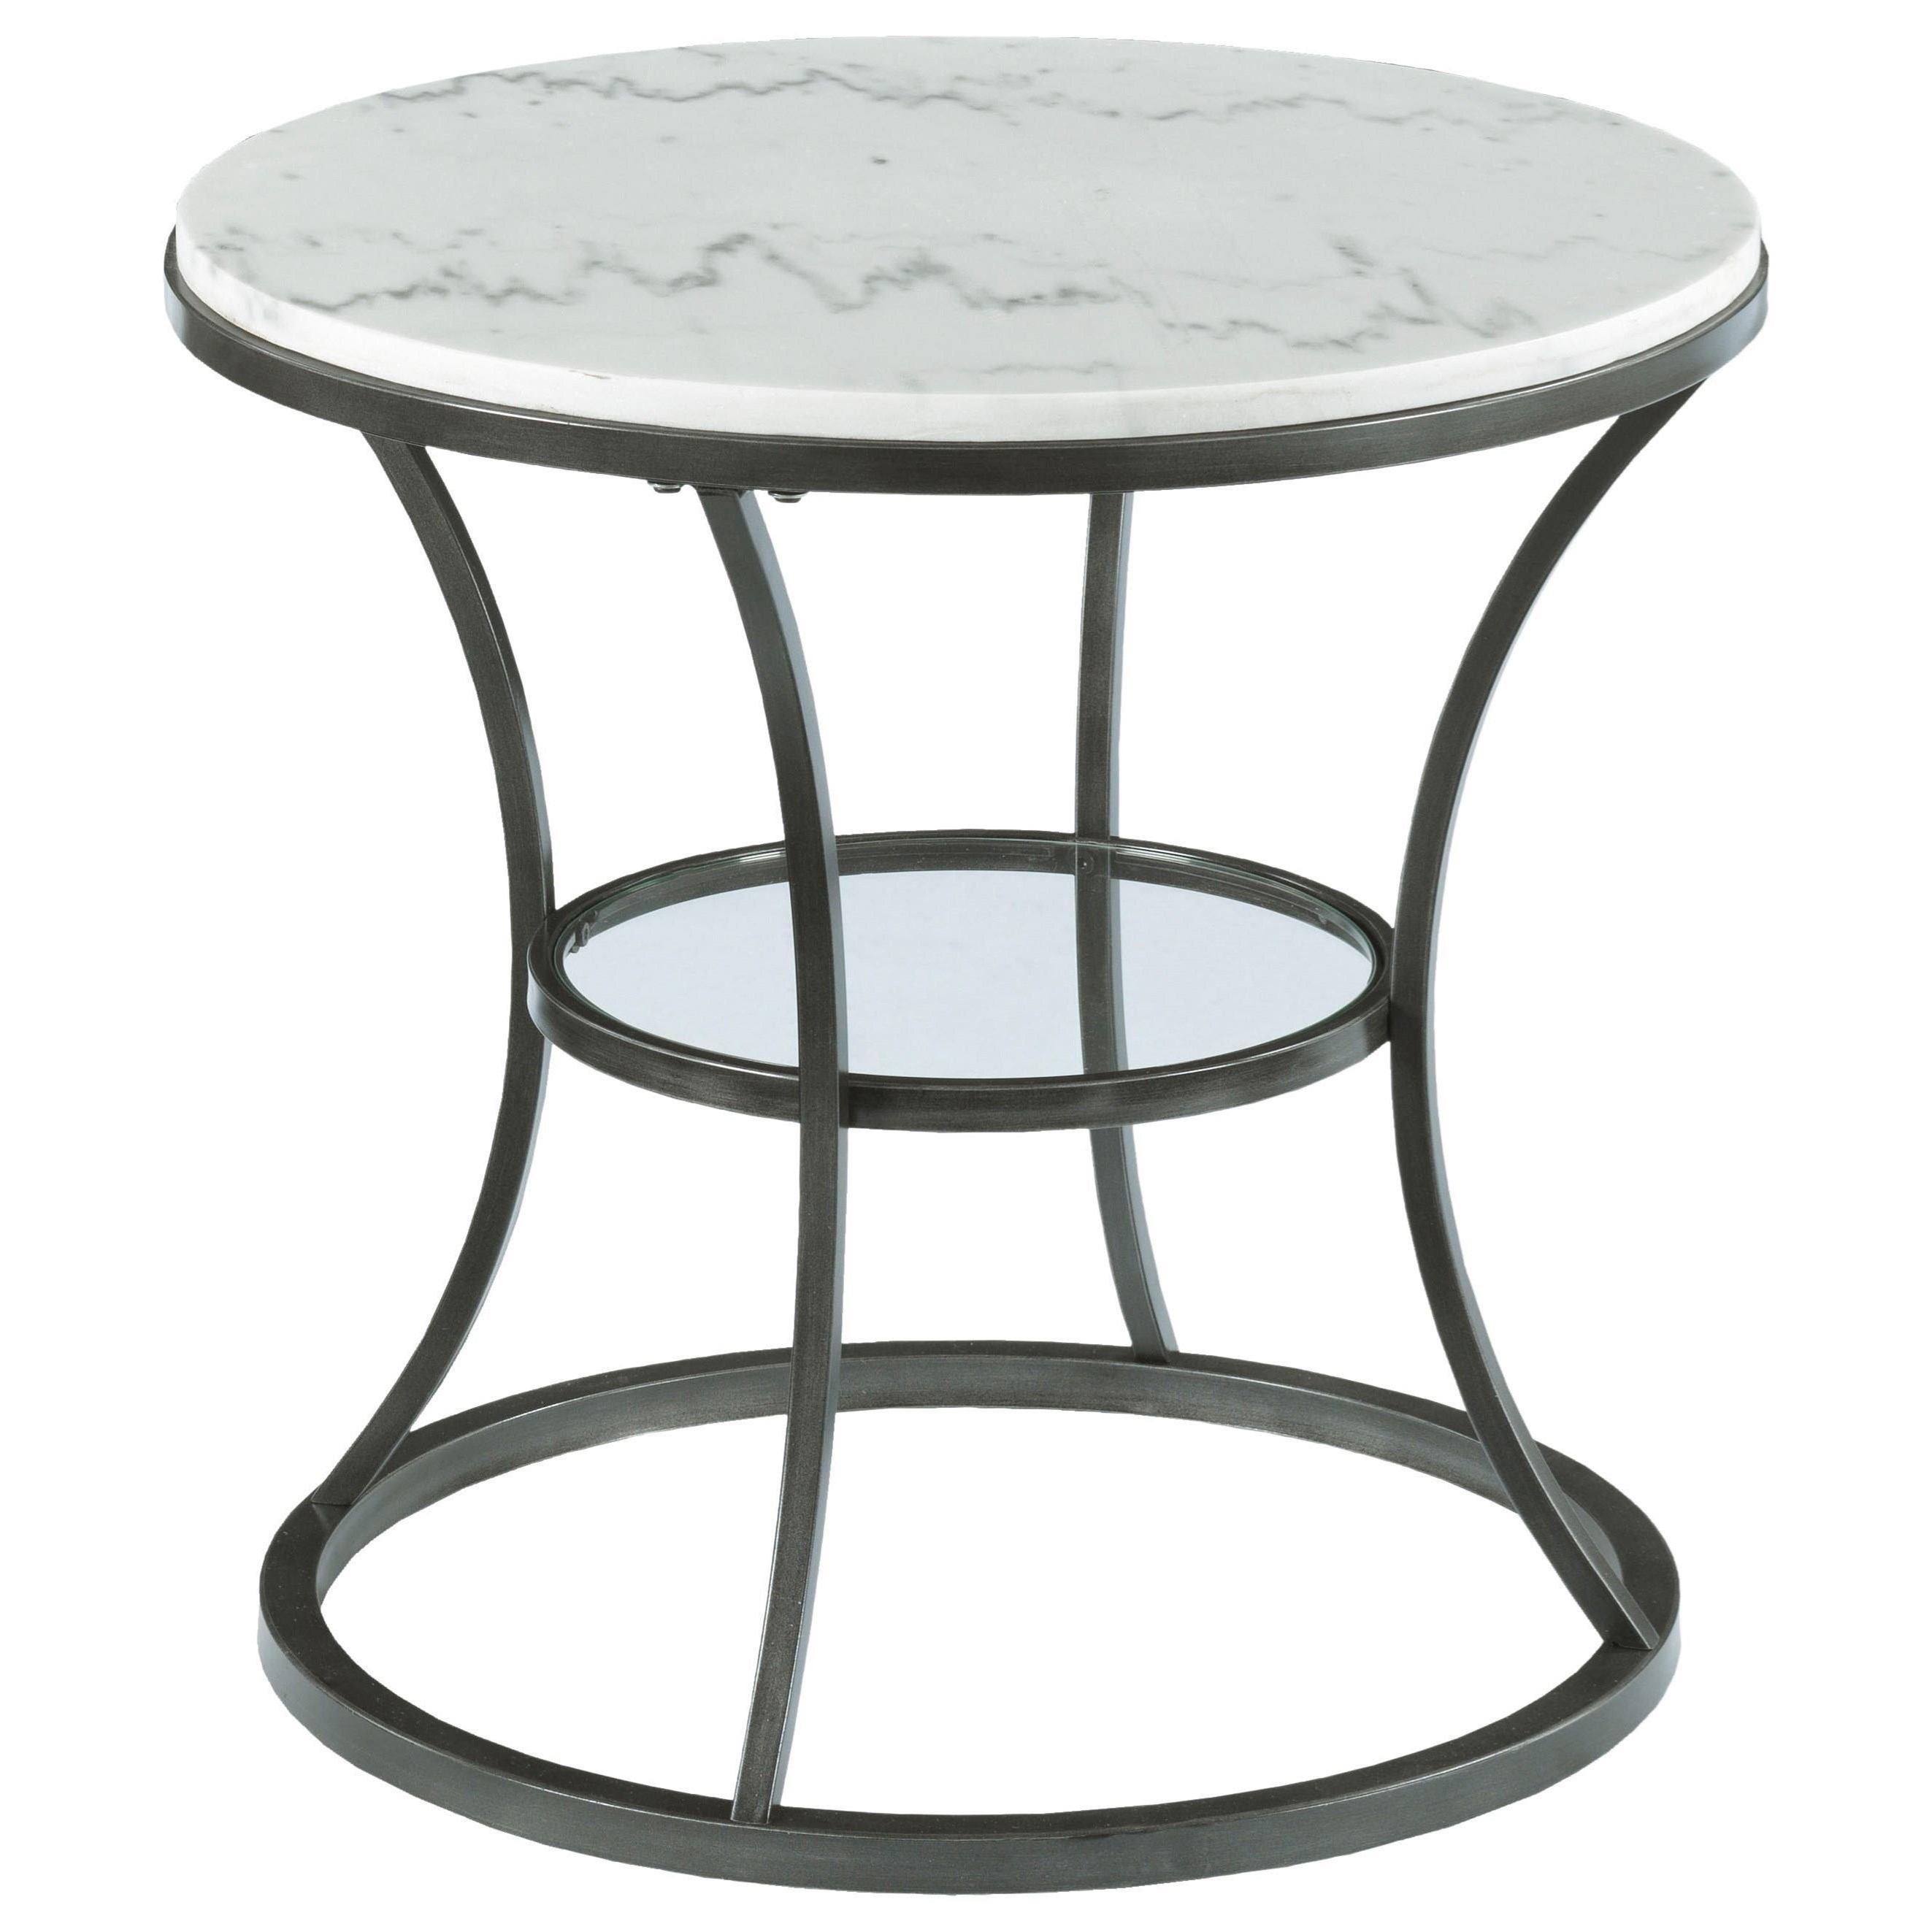 Hammary Impact Marble Top Round End Table - Item Number: 576-918